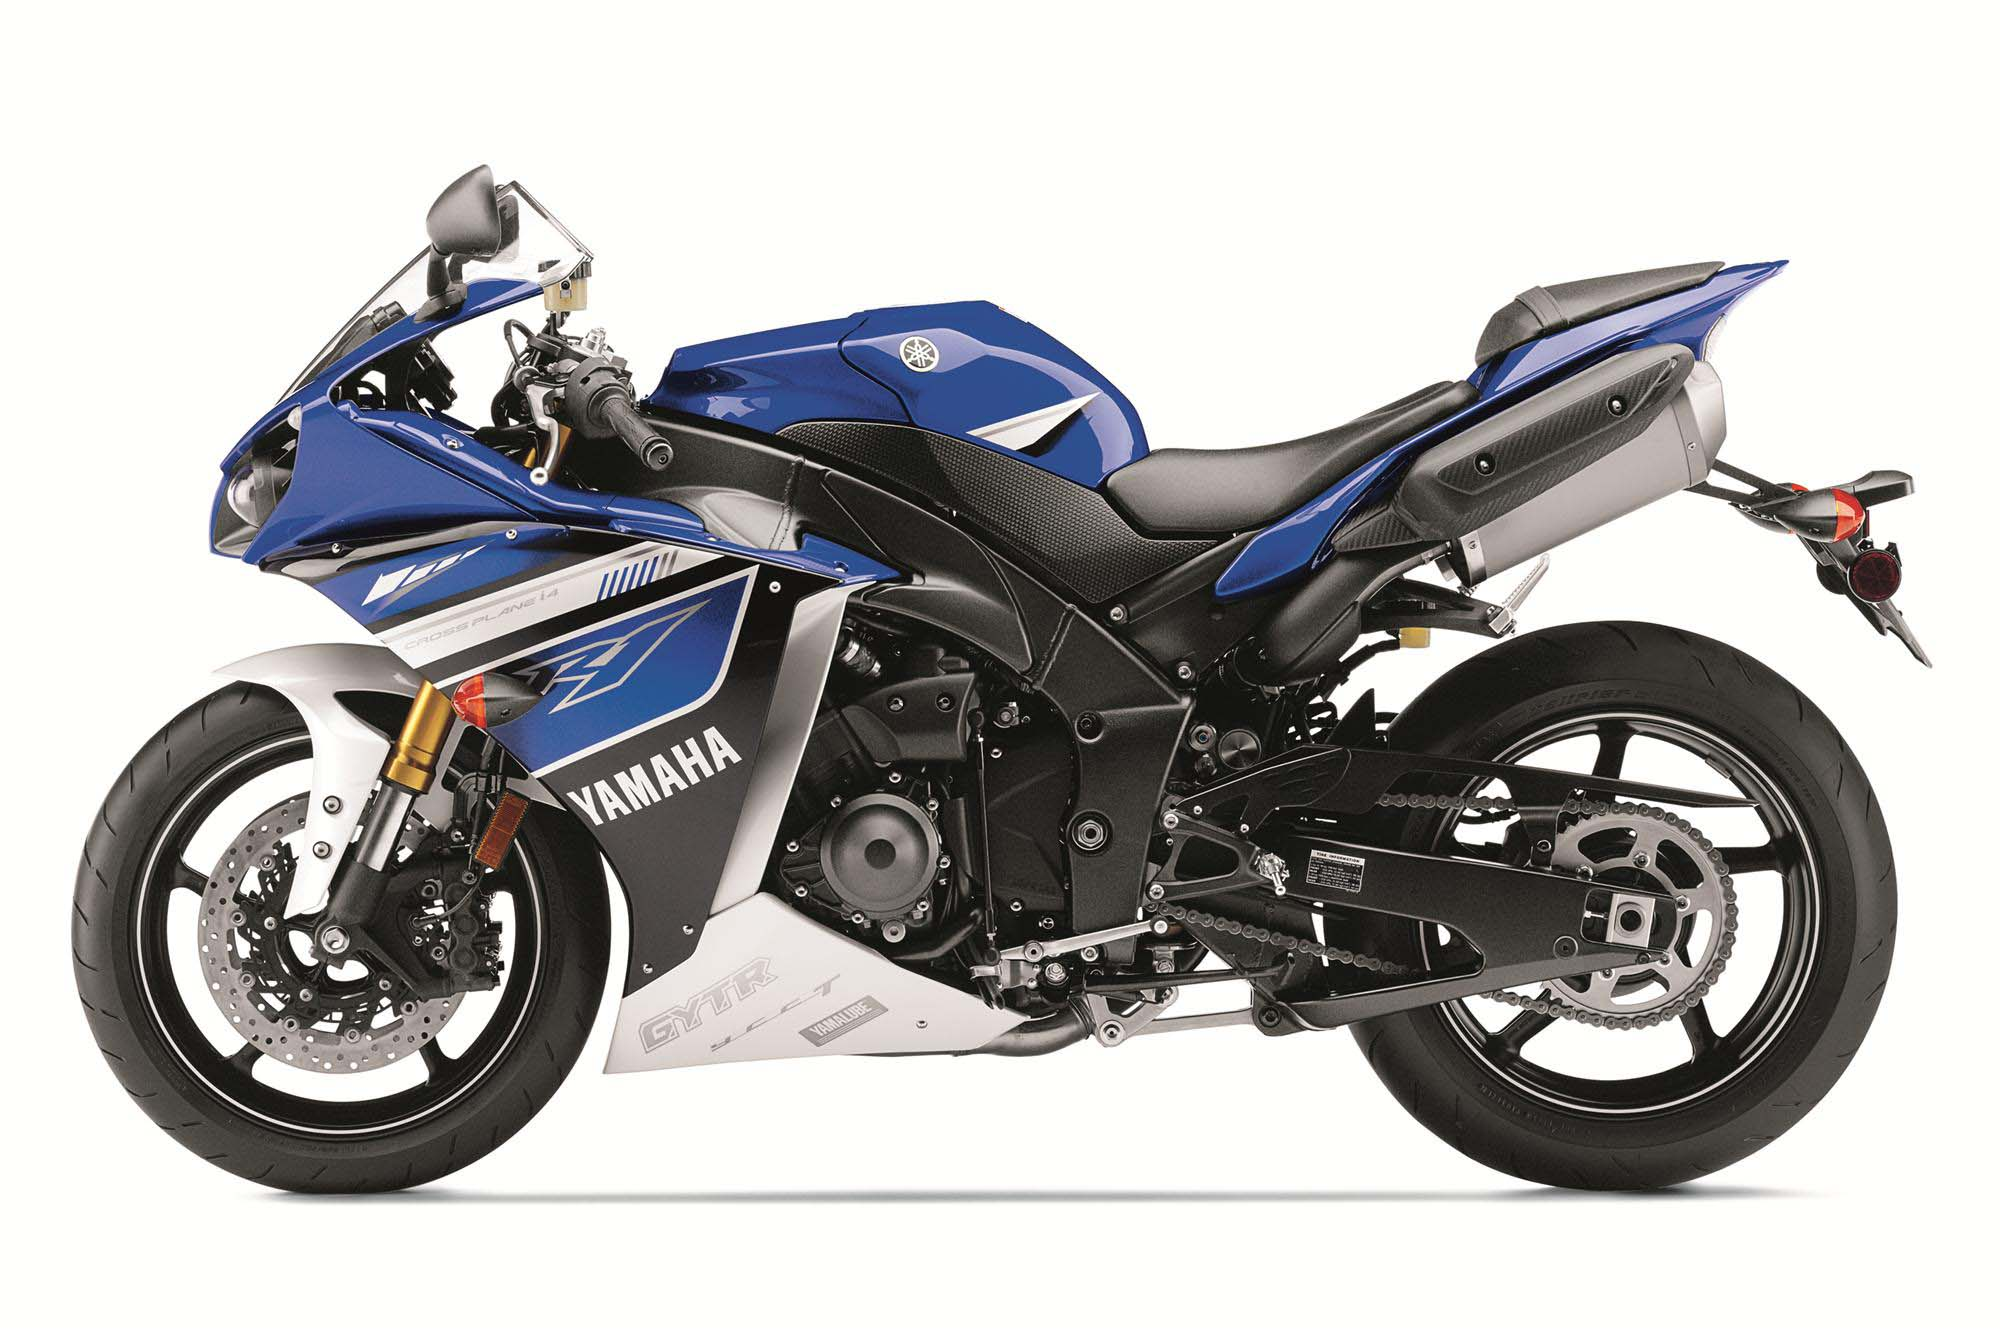 New colors only for the 2013 yamaha yzf r1 asphalt rubber for 01 yamaha r1